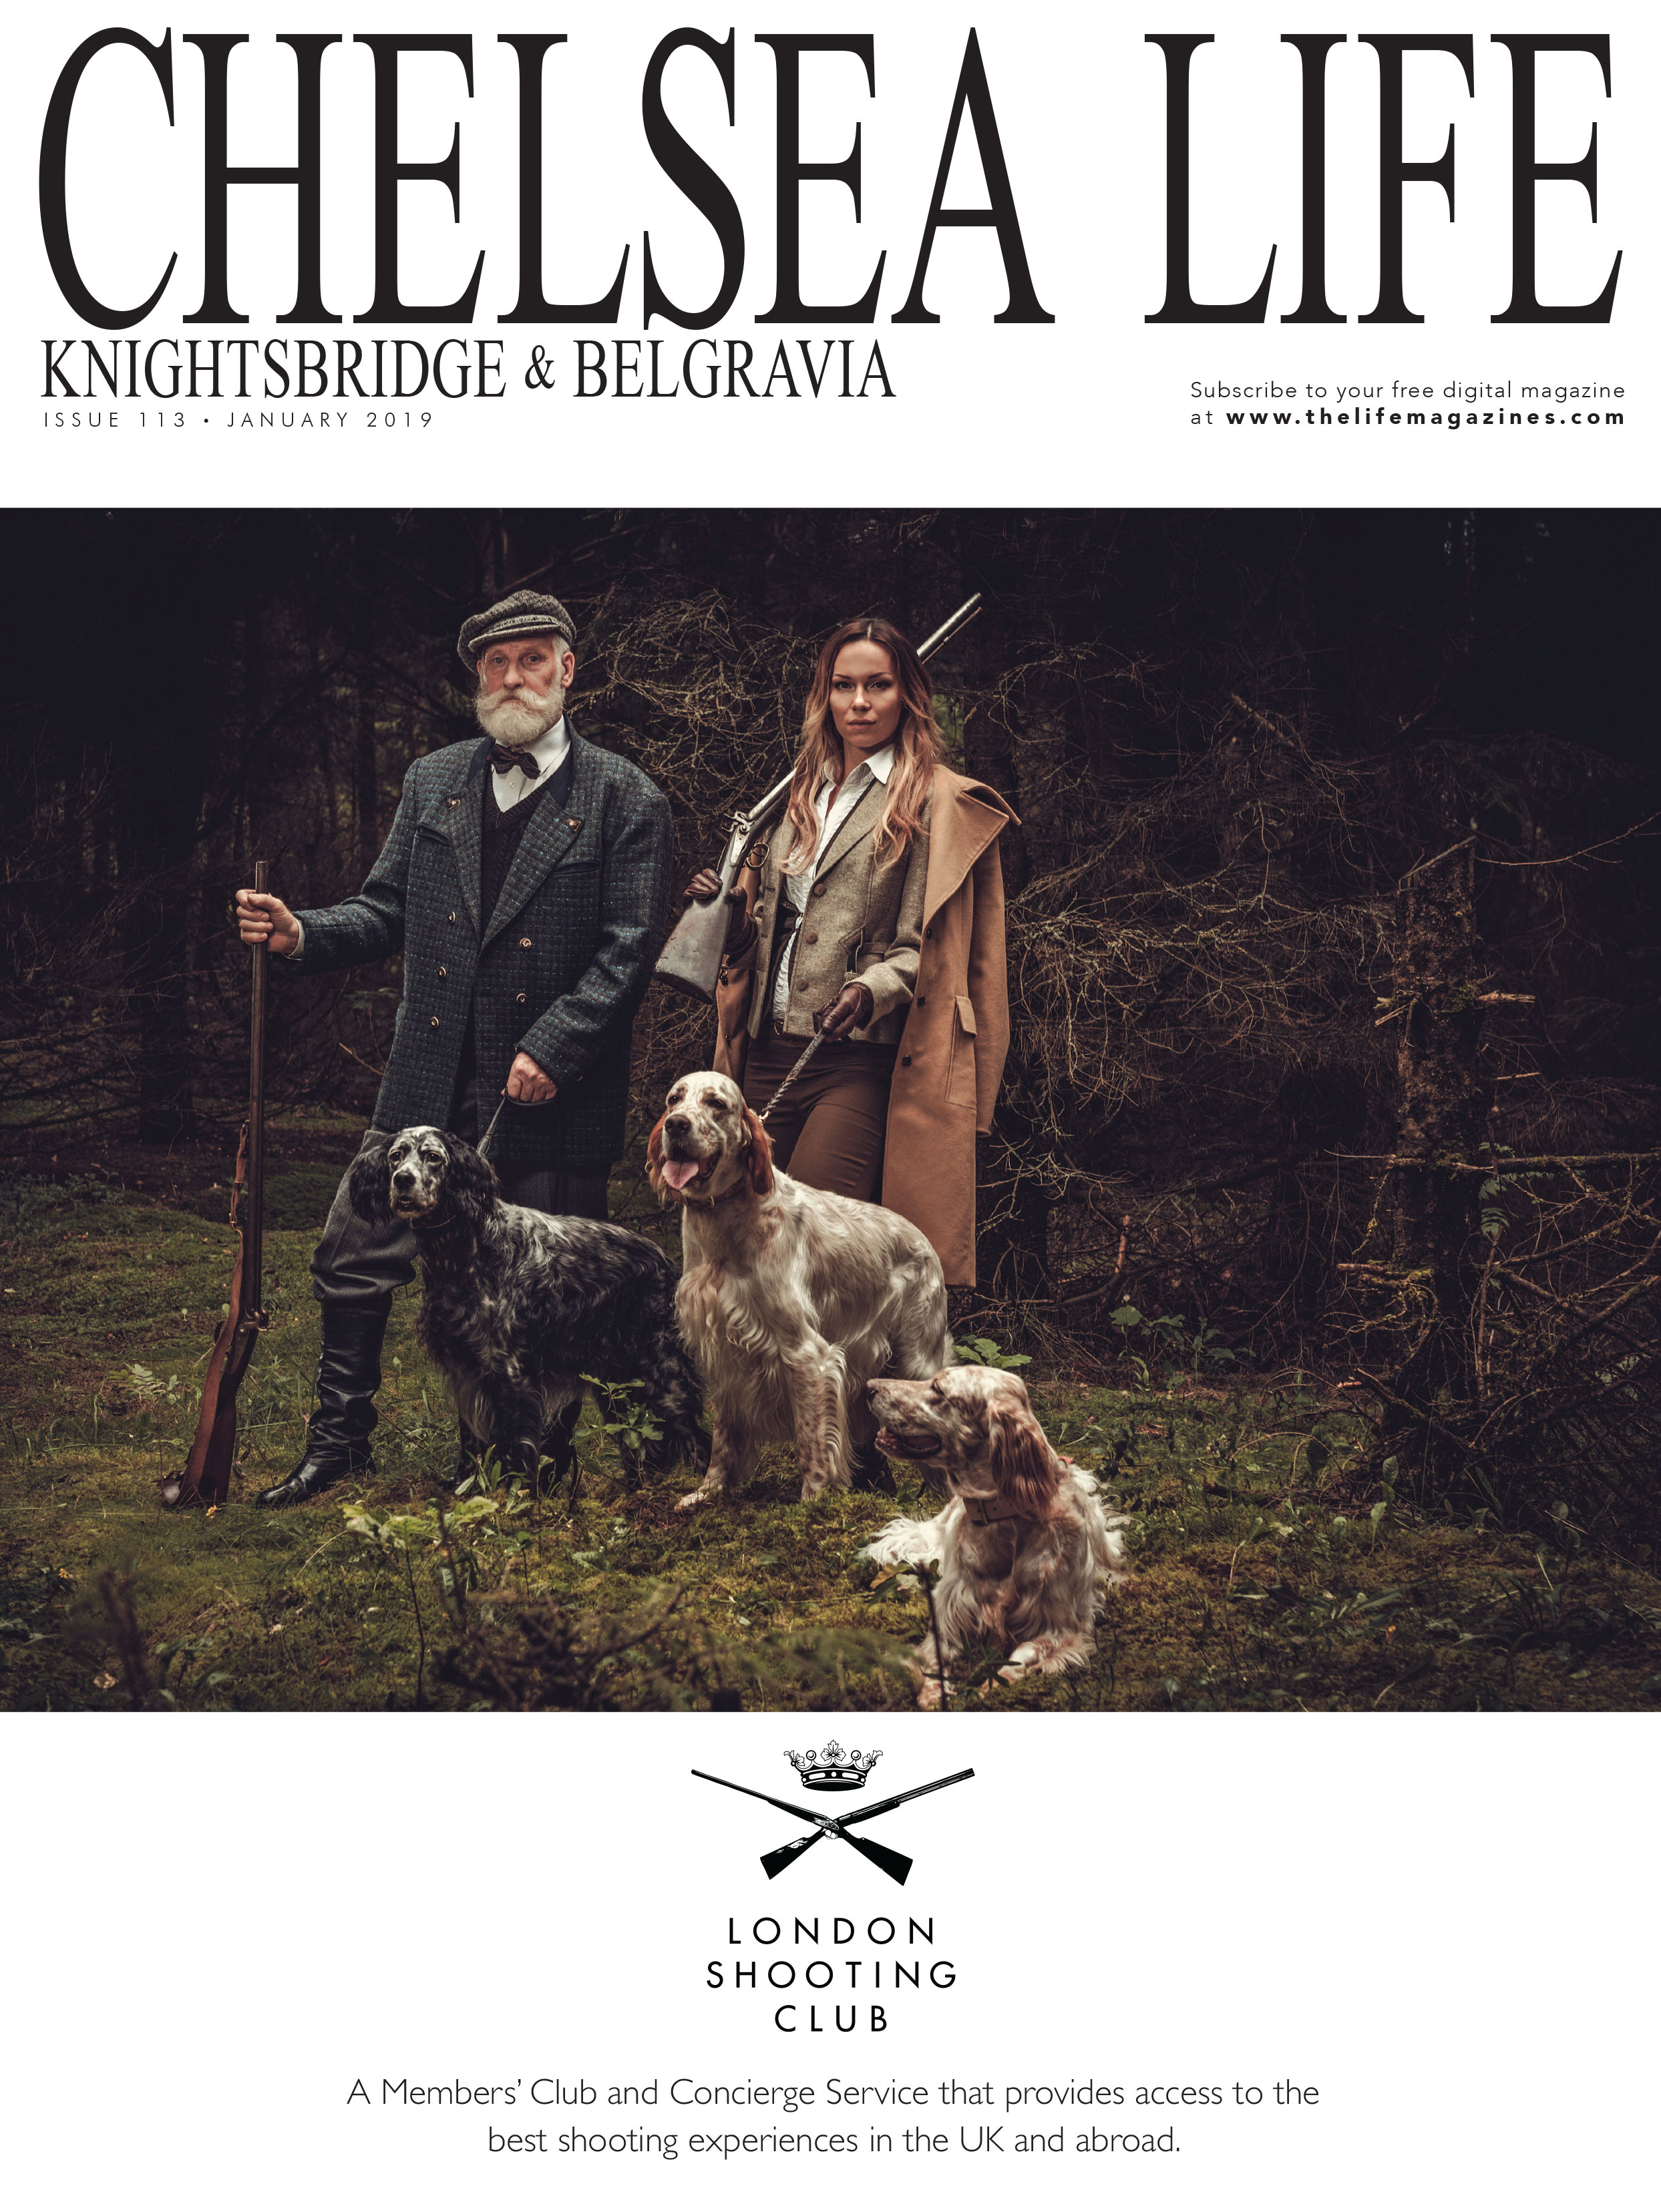 London Life Magazine - January 2019 issue